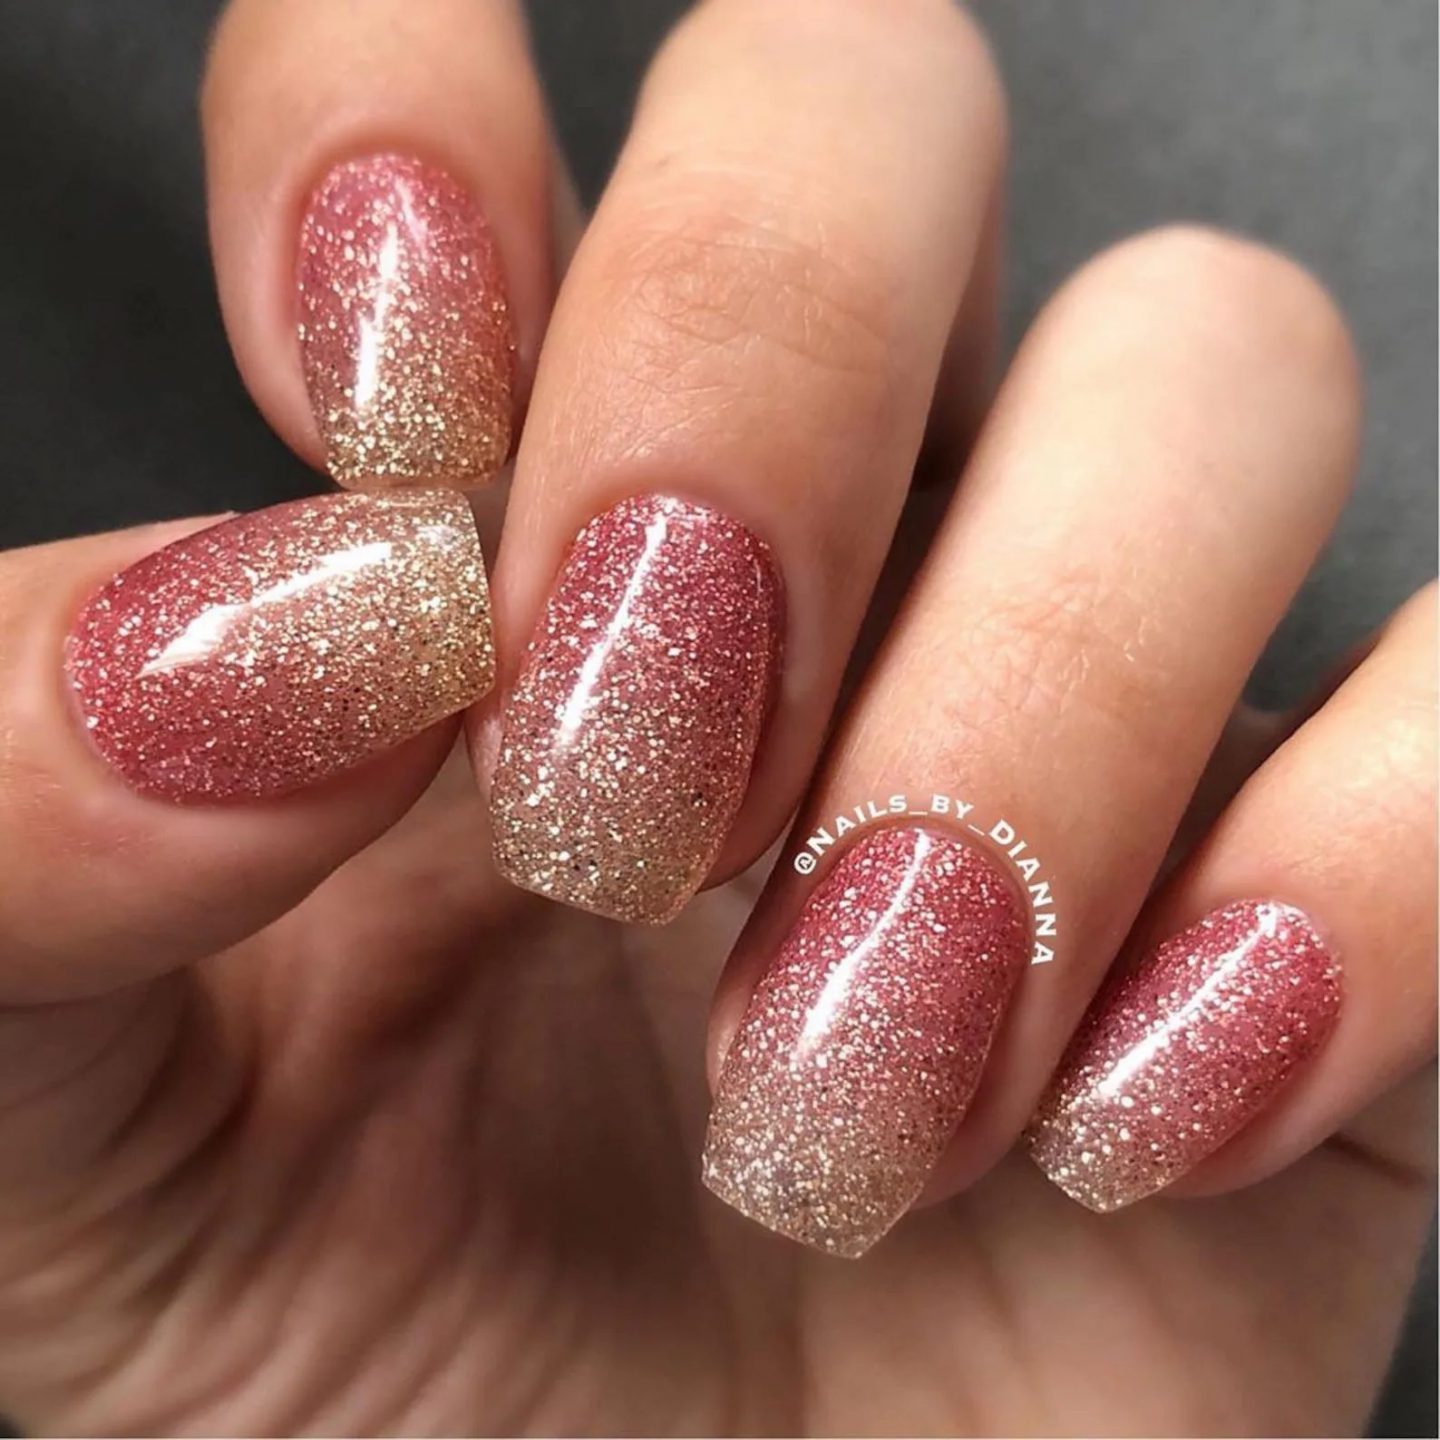 Short rose gold ombre nails with glitter